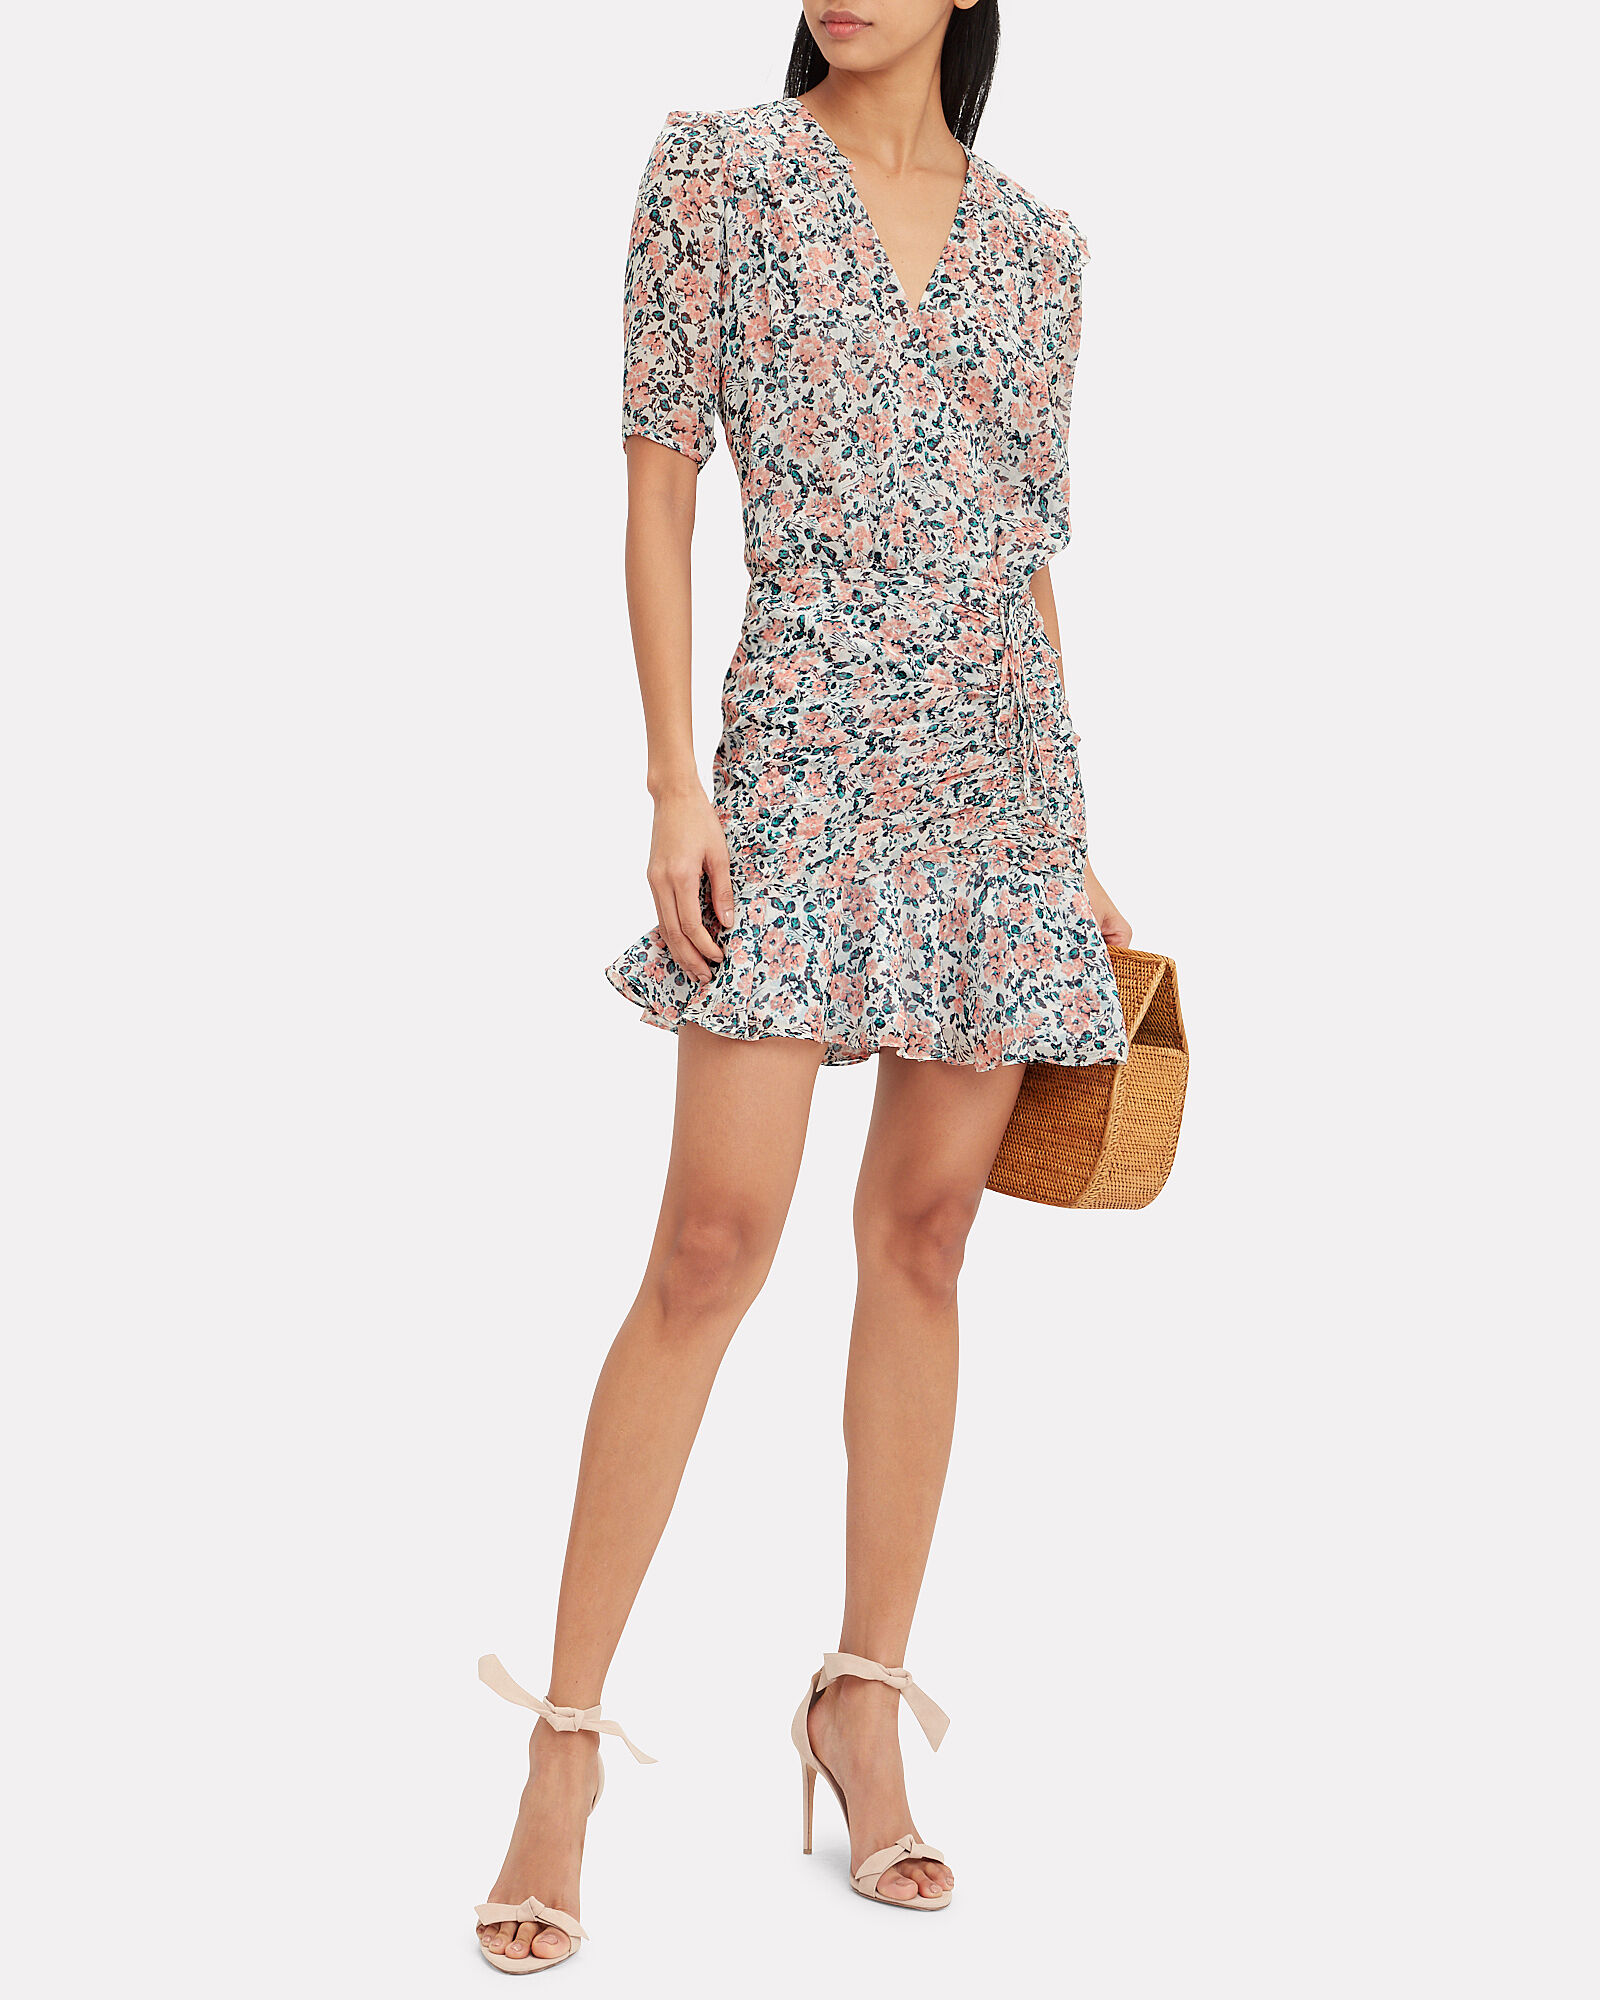 Dakota Chiffon Gardenia Mini Dress, MULTI, hi-res